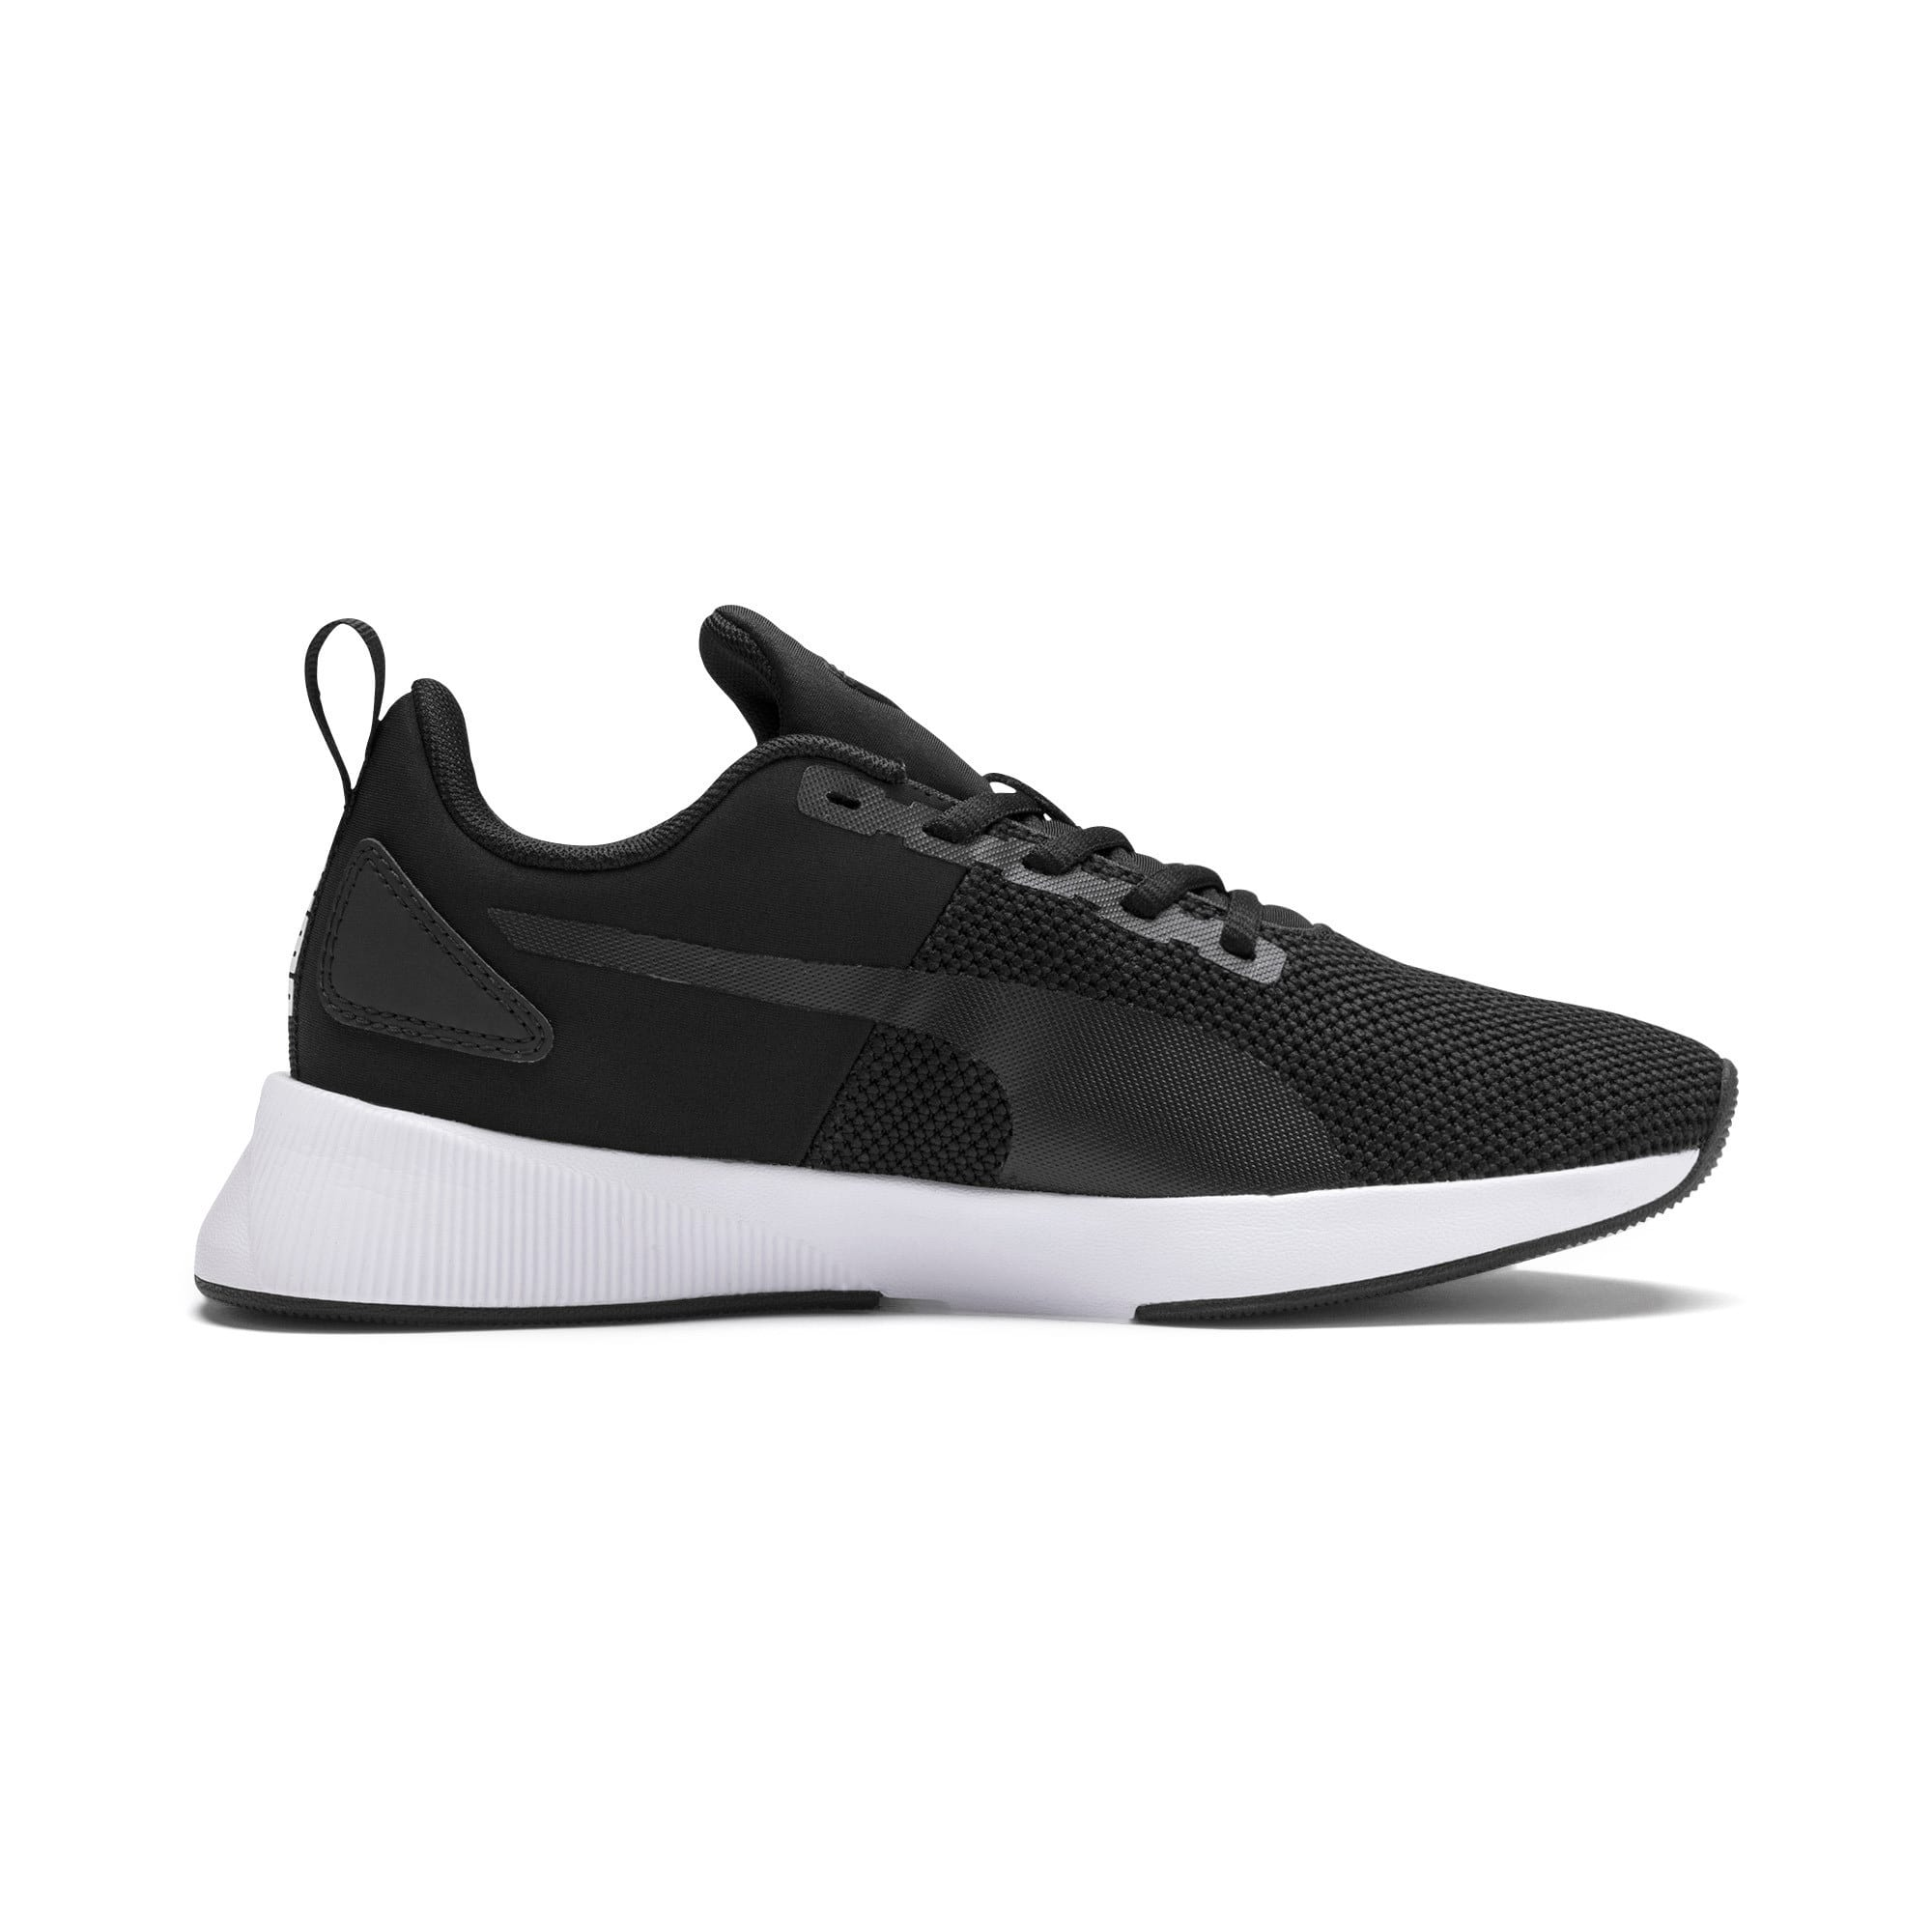 Thumbnail 5 of Flyer Runner Youth Trainers, Puma Black-Puma White, medium-IND